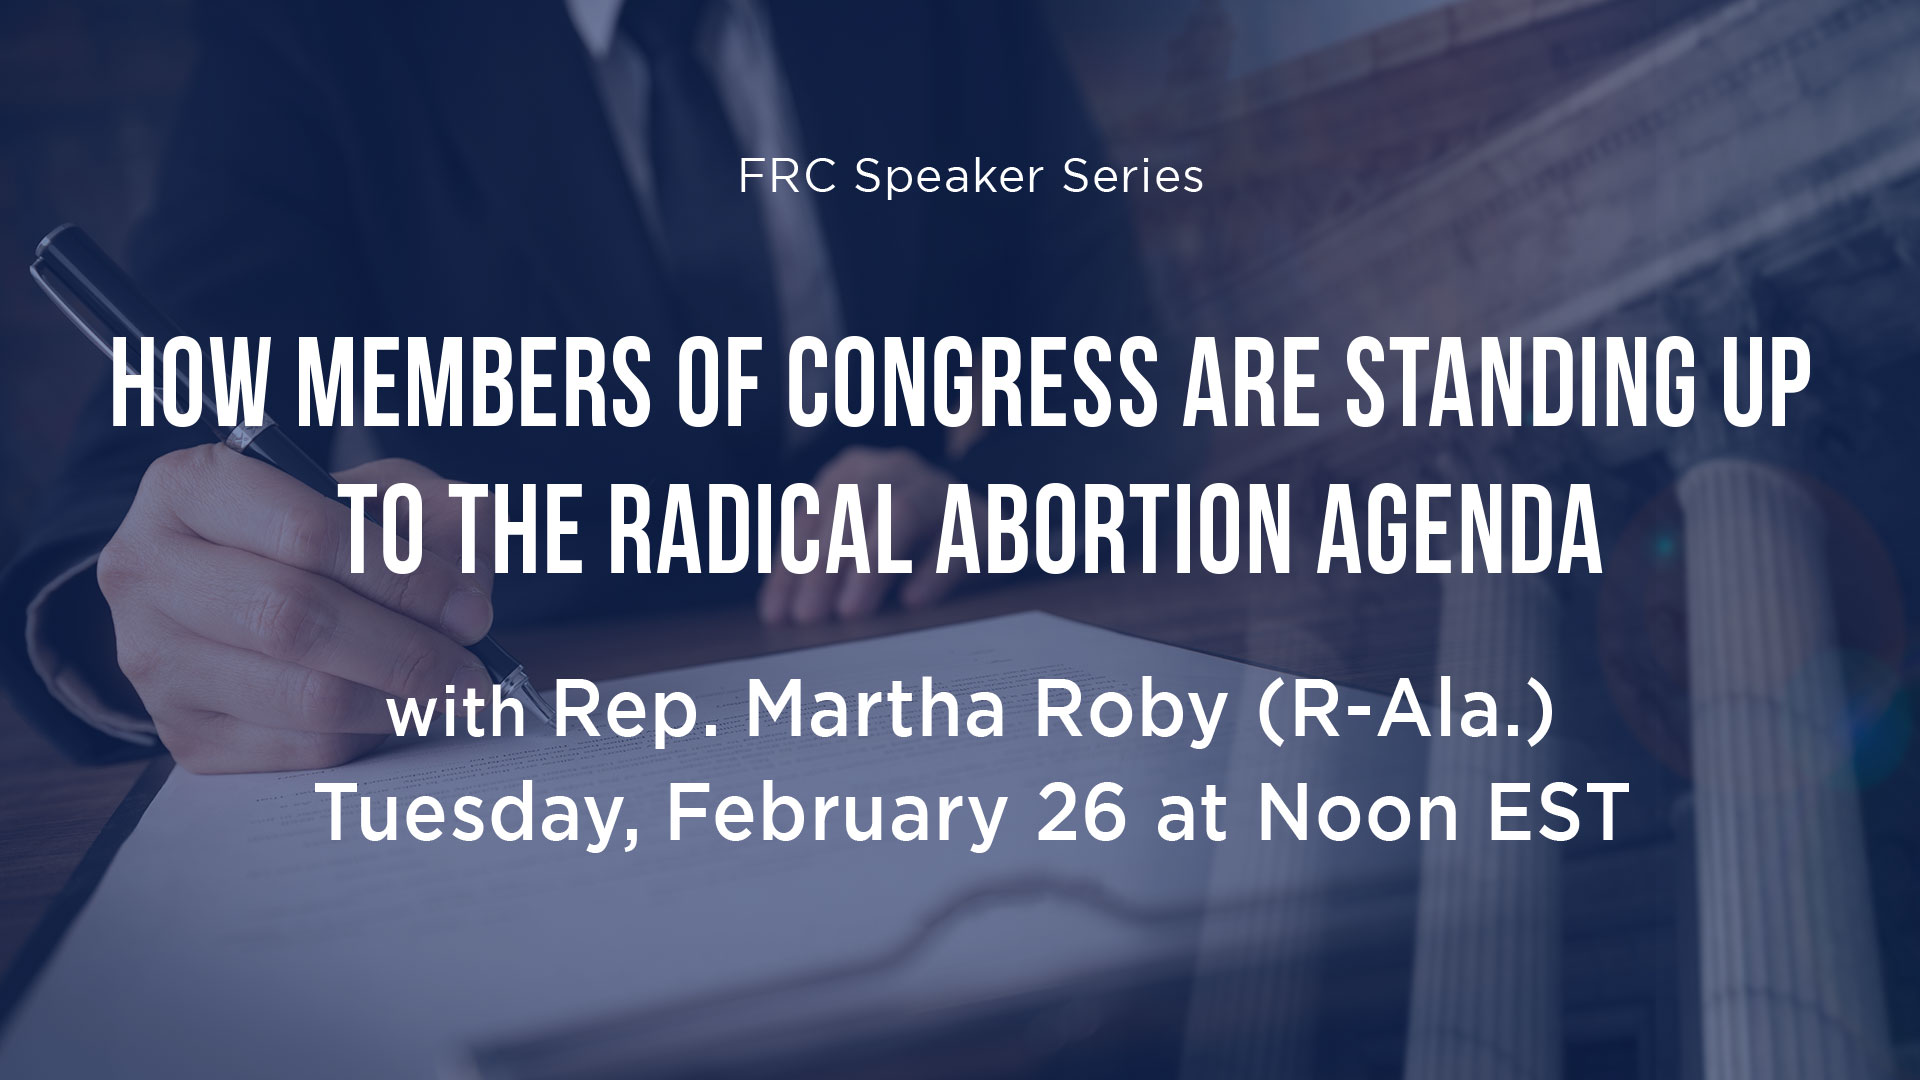 How Members of Congress are Standing up to the Radical Abortion Agenda